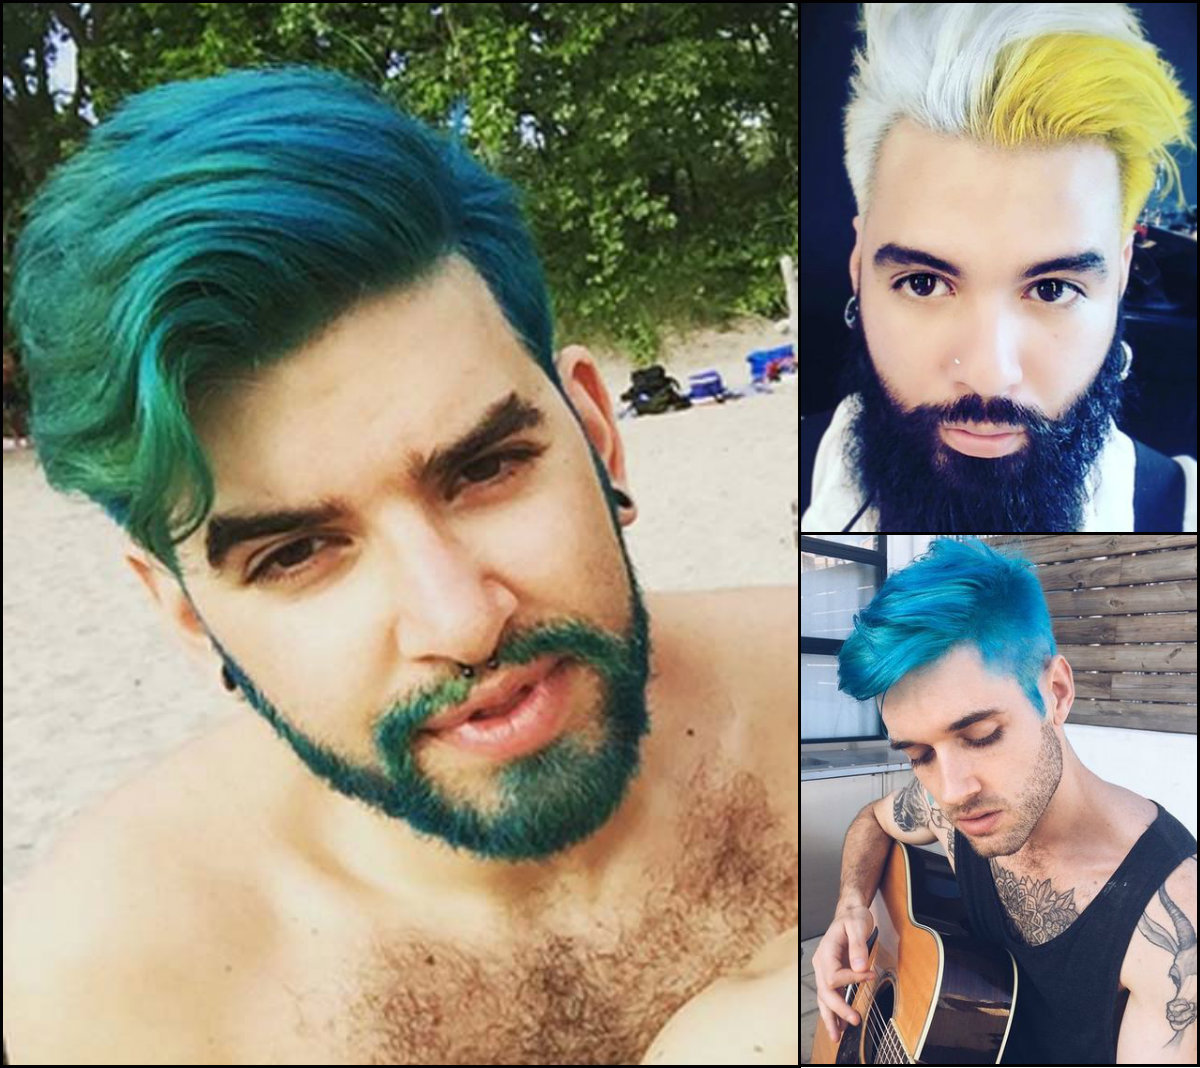 outrageous merman hair trends for men - popular hairstyle